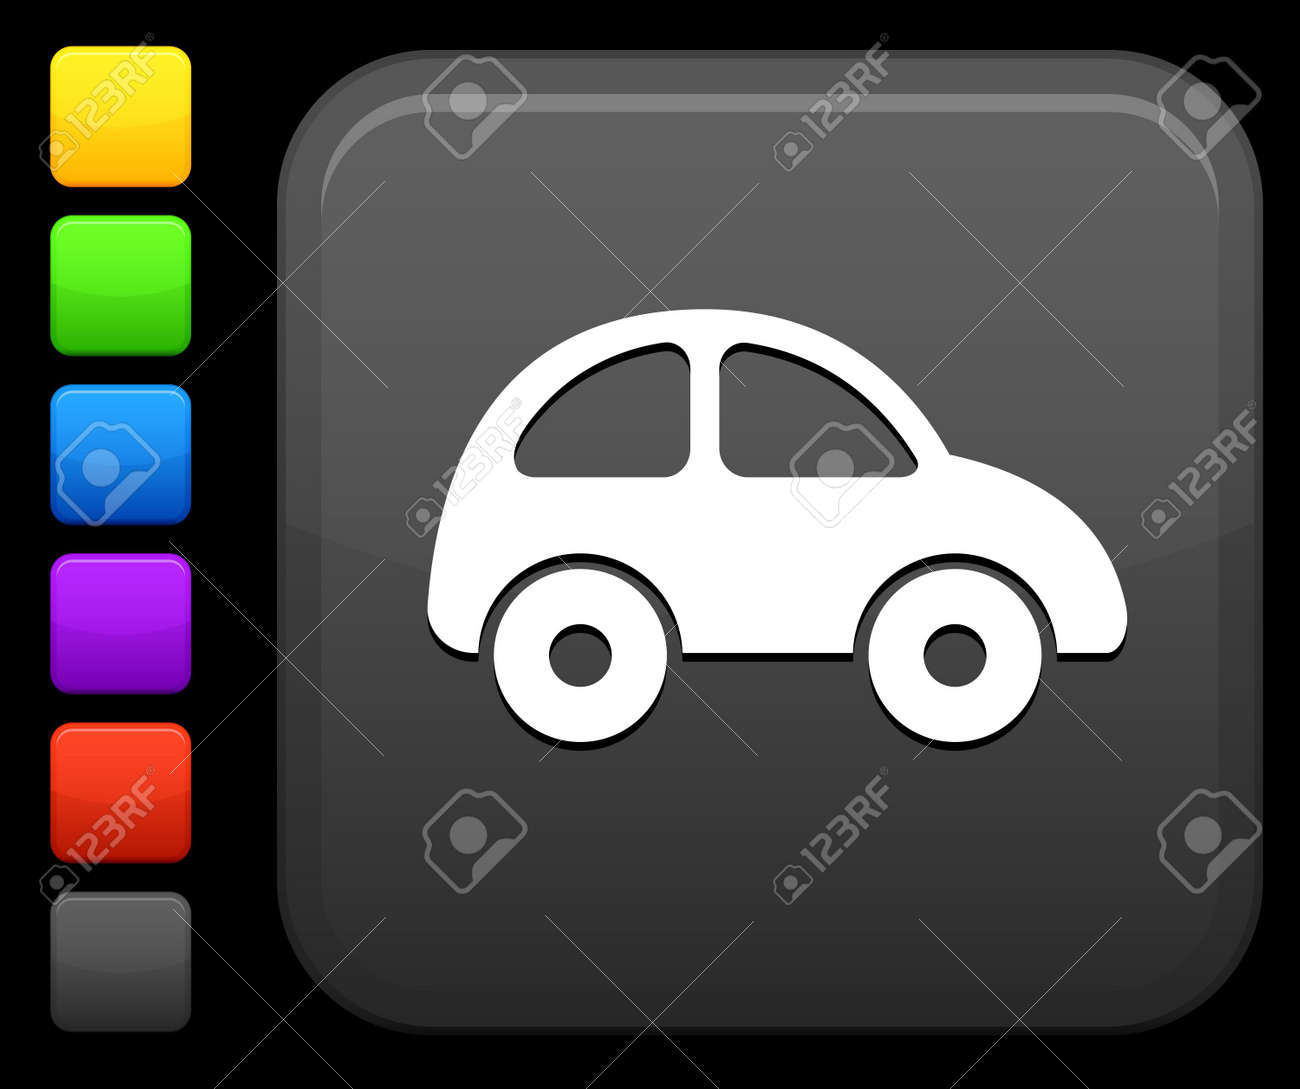 Original icon. Six color options included. Stock Photo - 6426115